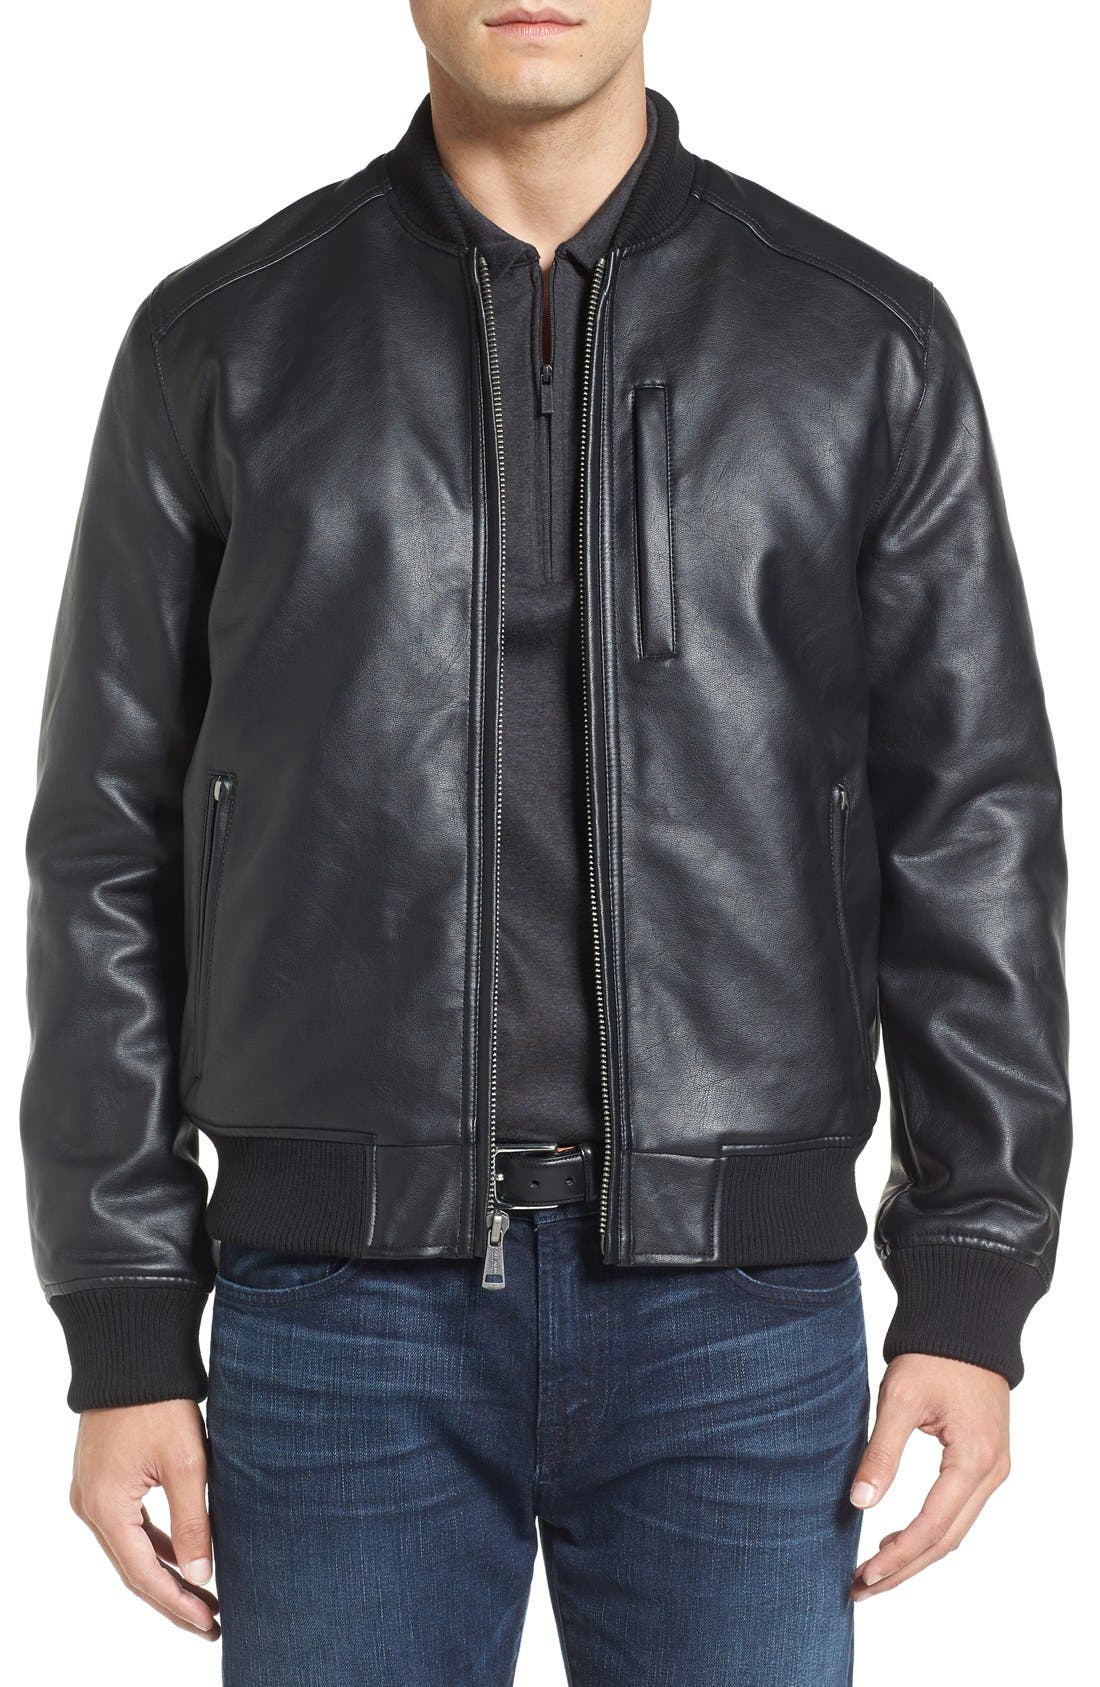 Alternate Image 1 Selected - Cole Haan Faux Leather Varsity Jacket